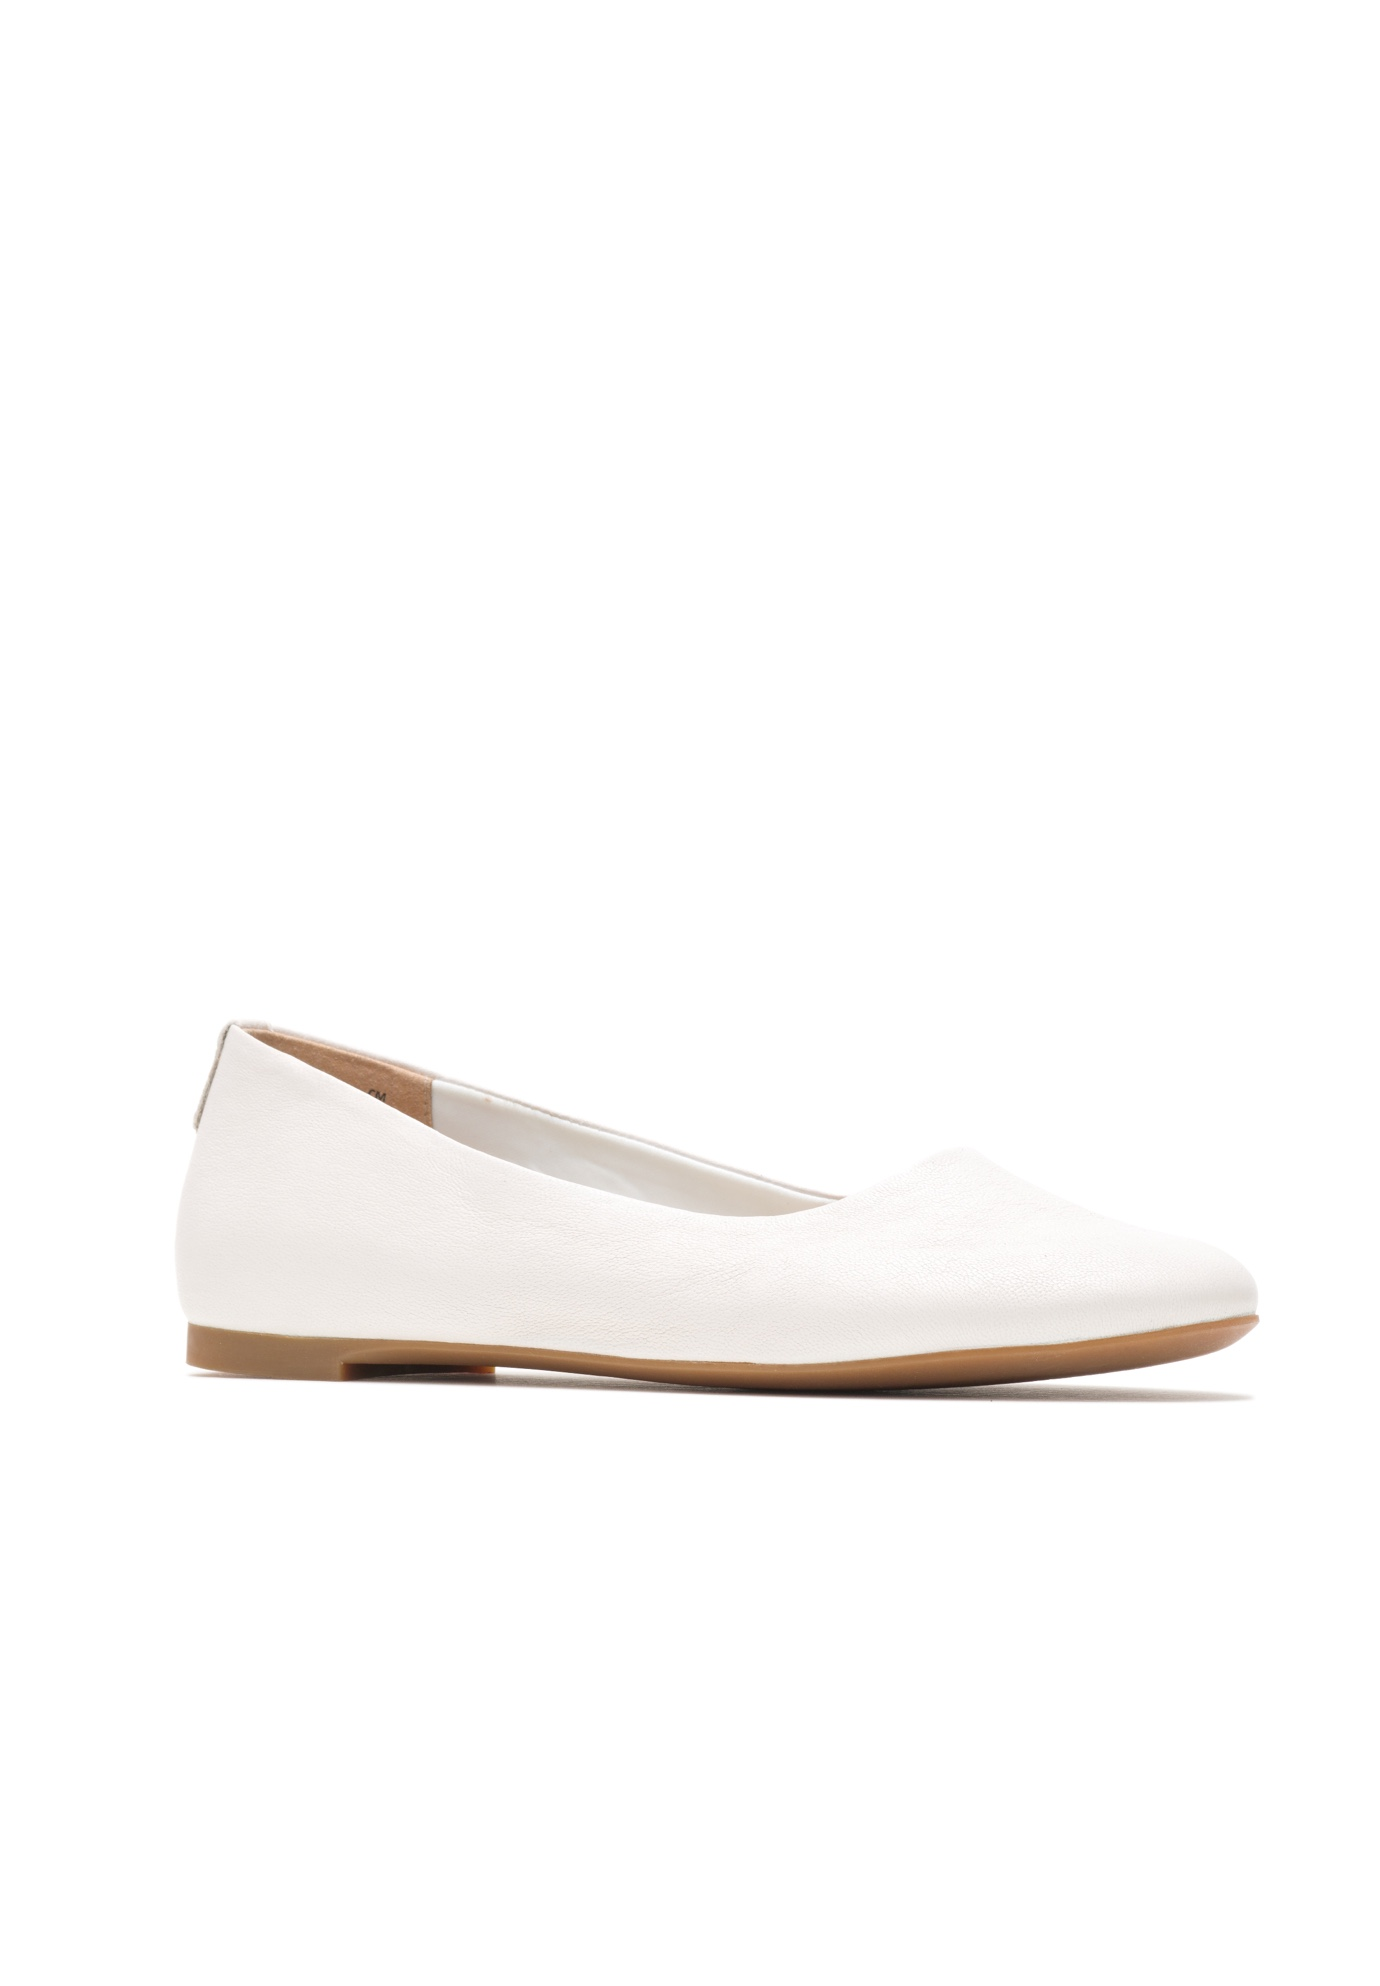 Kendal Ballet Flats by Hush Puppies,